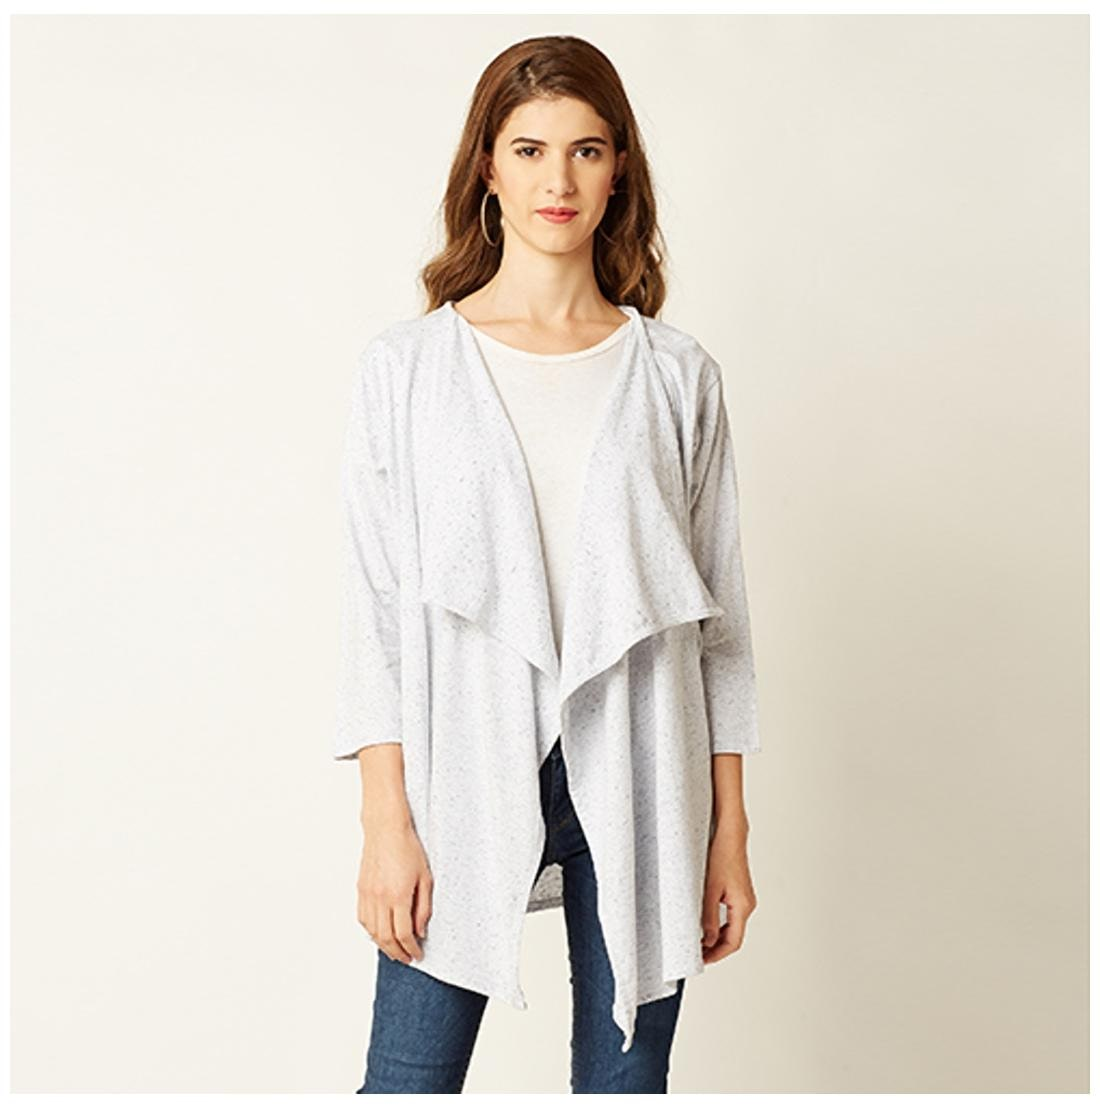 6875a2b45c7 https://assetscdn1.paytm.com/images/catalog/product/. Miss Chase Women's  Grey Cotton Open Front 3/4 Sleeve Solid Asymmetrical Hemline Waterfall Shrug